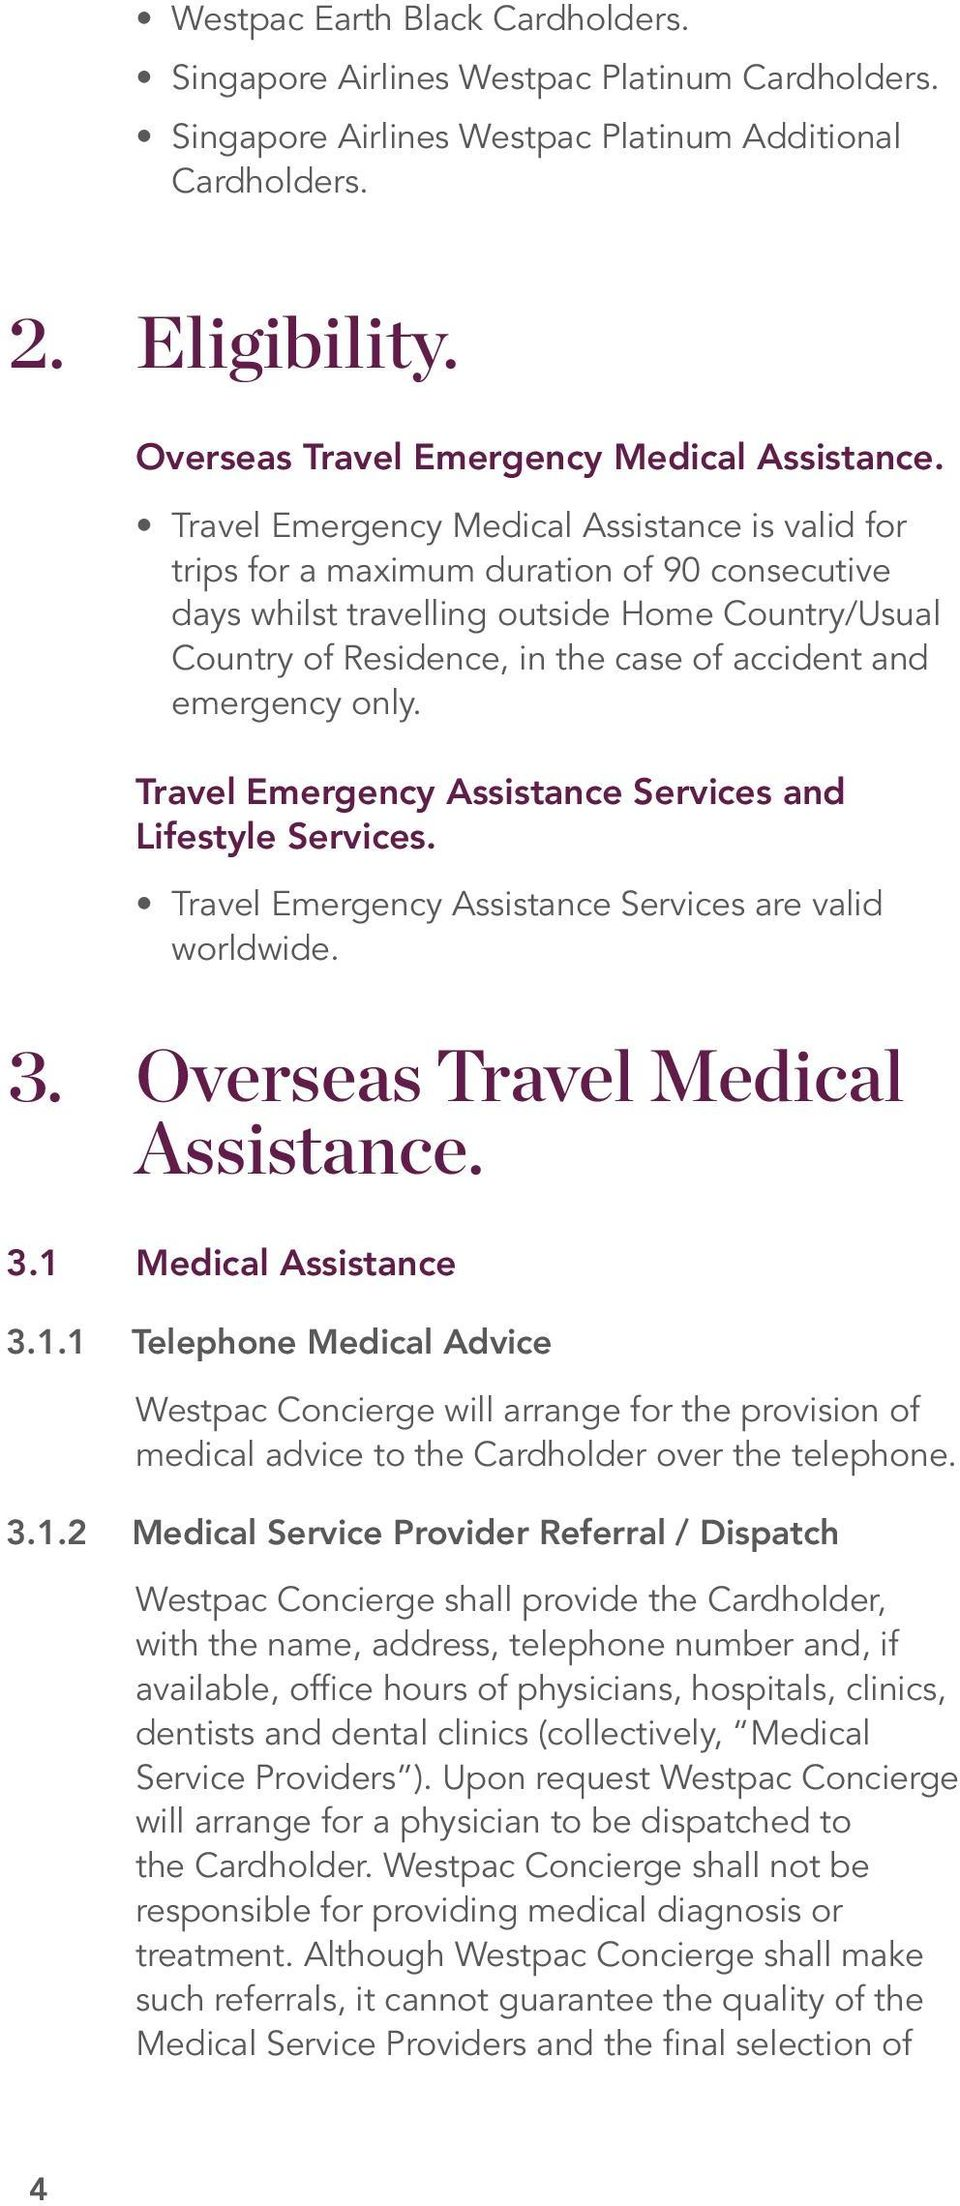 Travel Emergency Medical Assistance is valid for trips for a maximum duration of 90 consecutive days whilst travelling outside Home Country/Usual Country of Residence, in the case of accident and